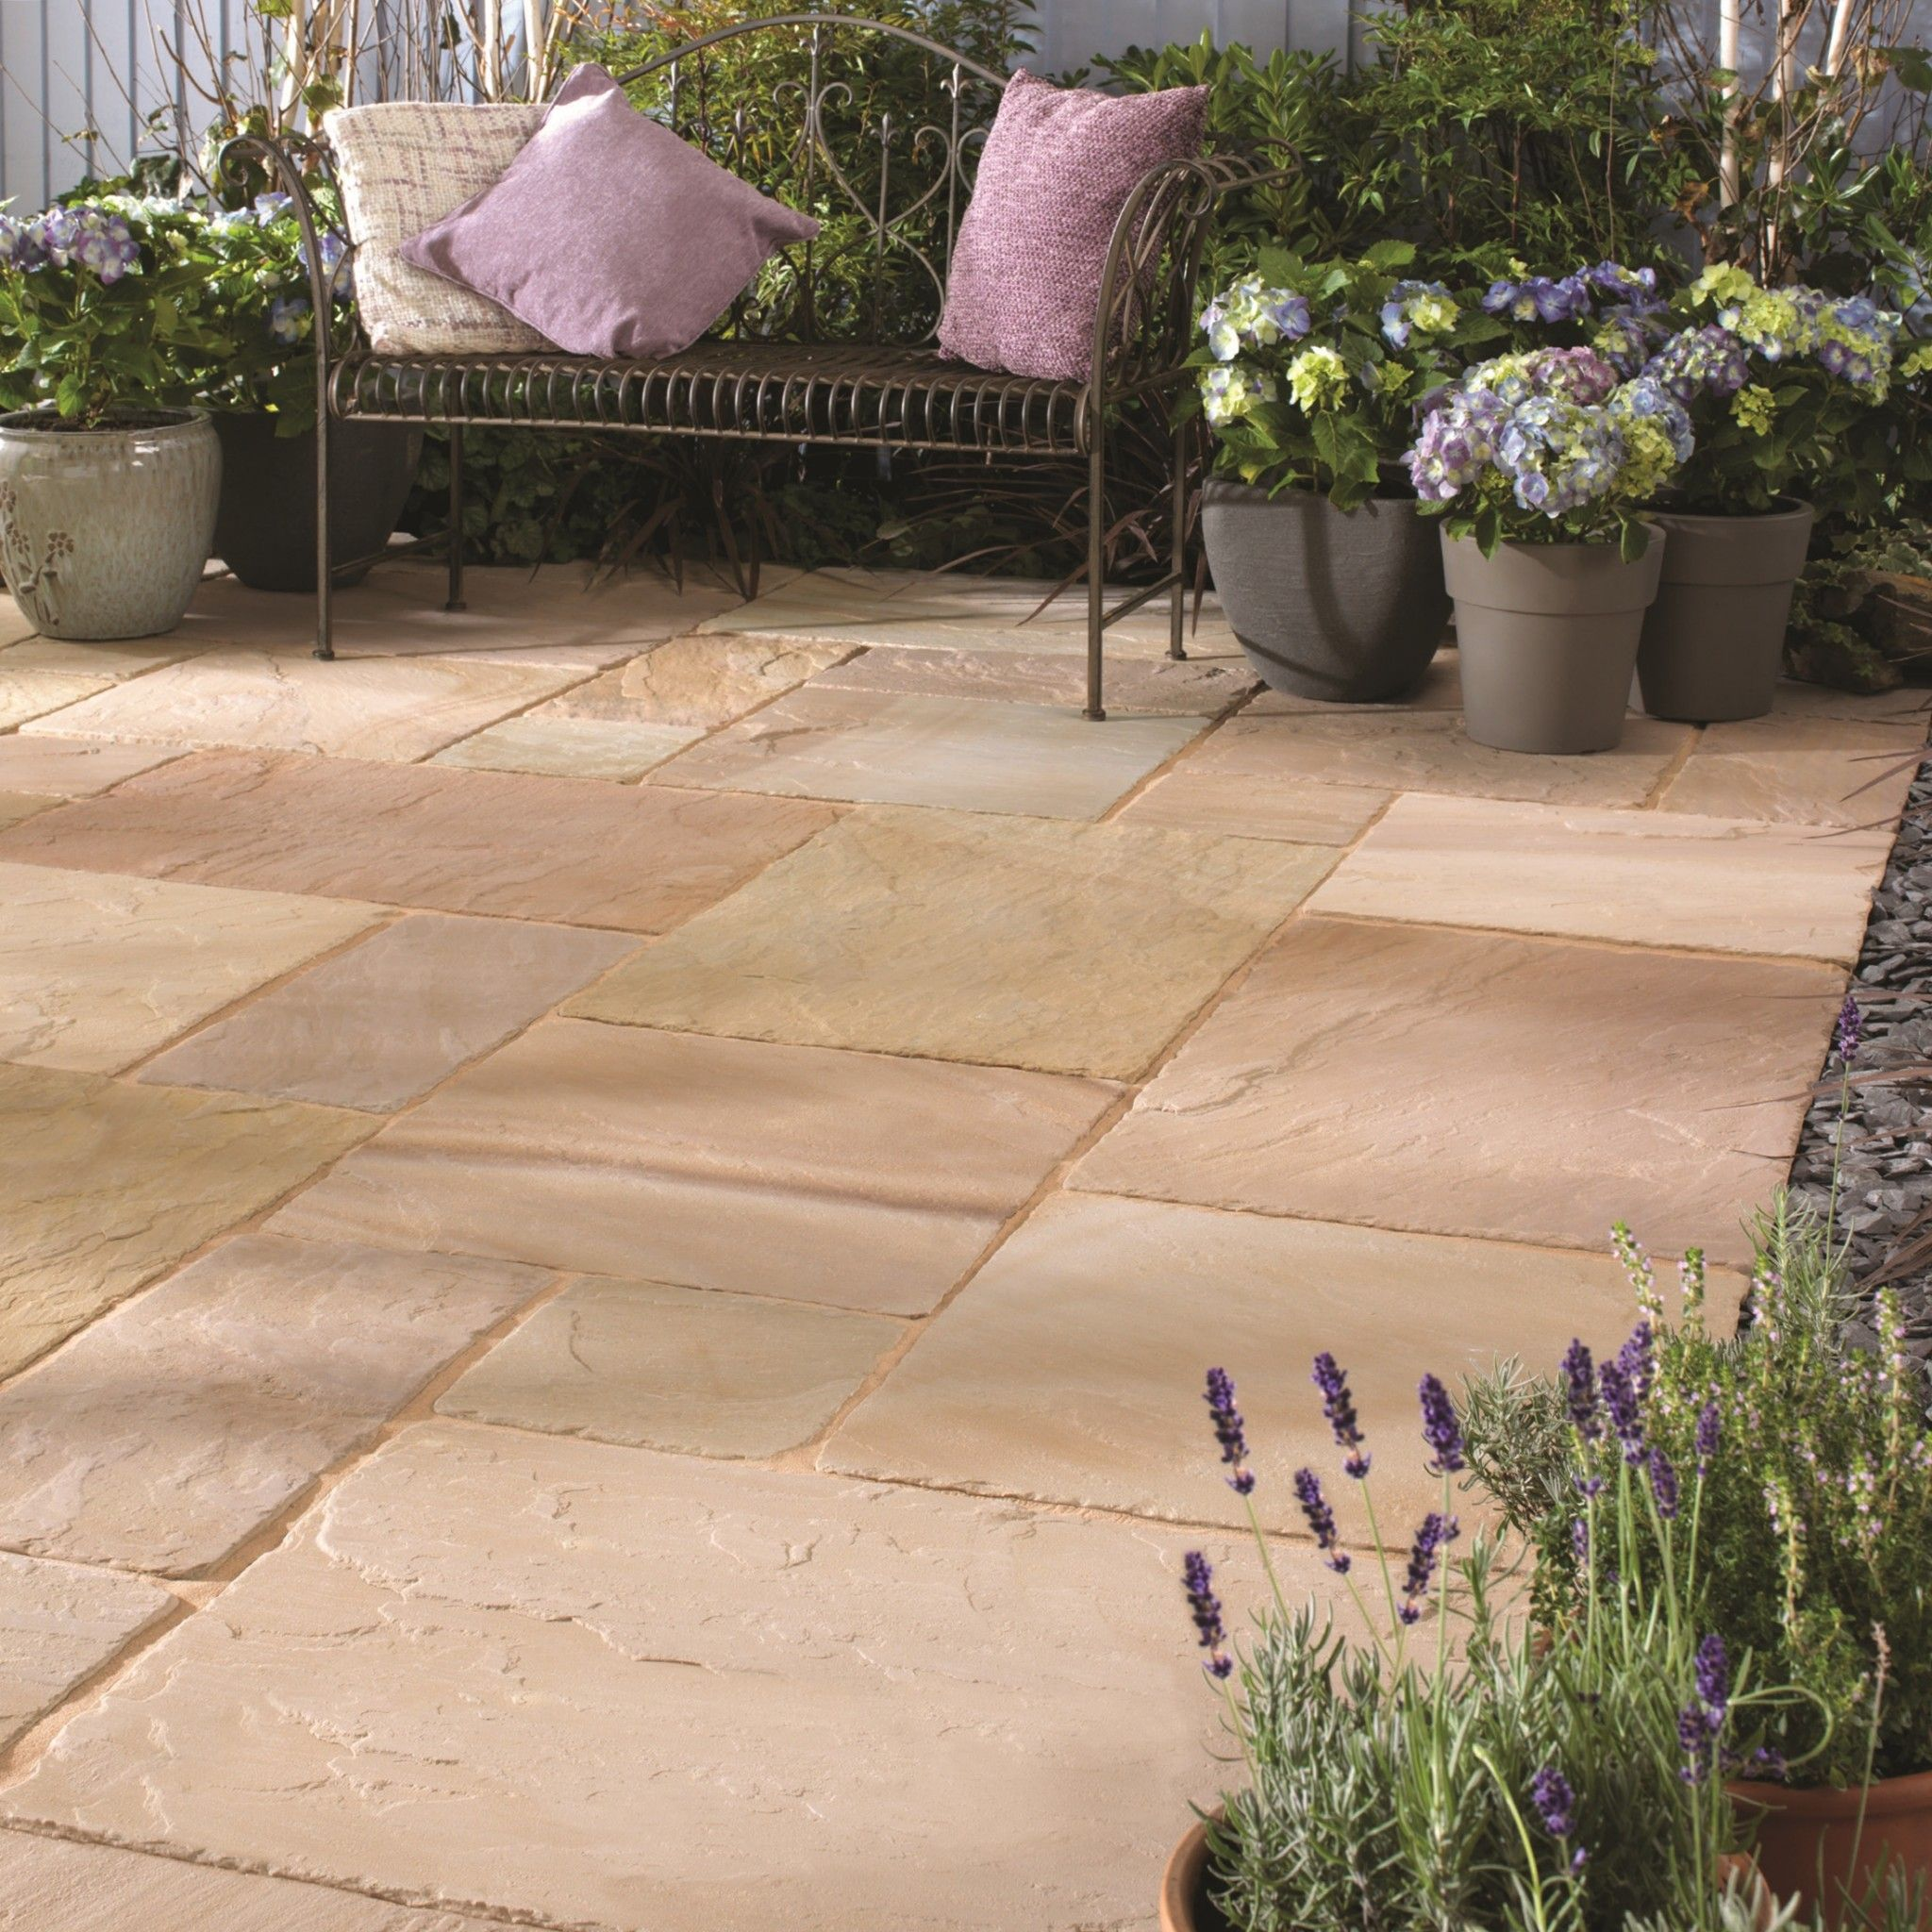 Bradstone Antique Natural Sandstone Paving Sunset Buff Patio Pack 15 30 M2 Per Pack Natural Stone Sandstone Paving Natural Stone Pavers Patio